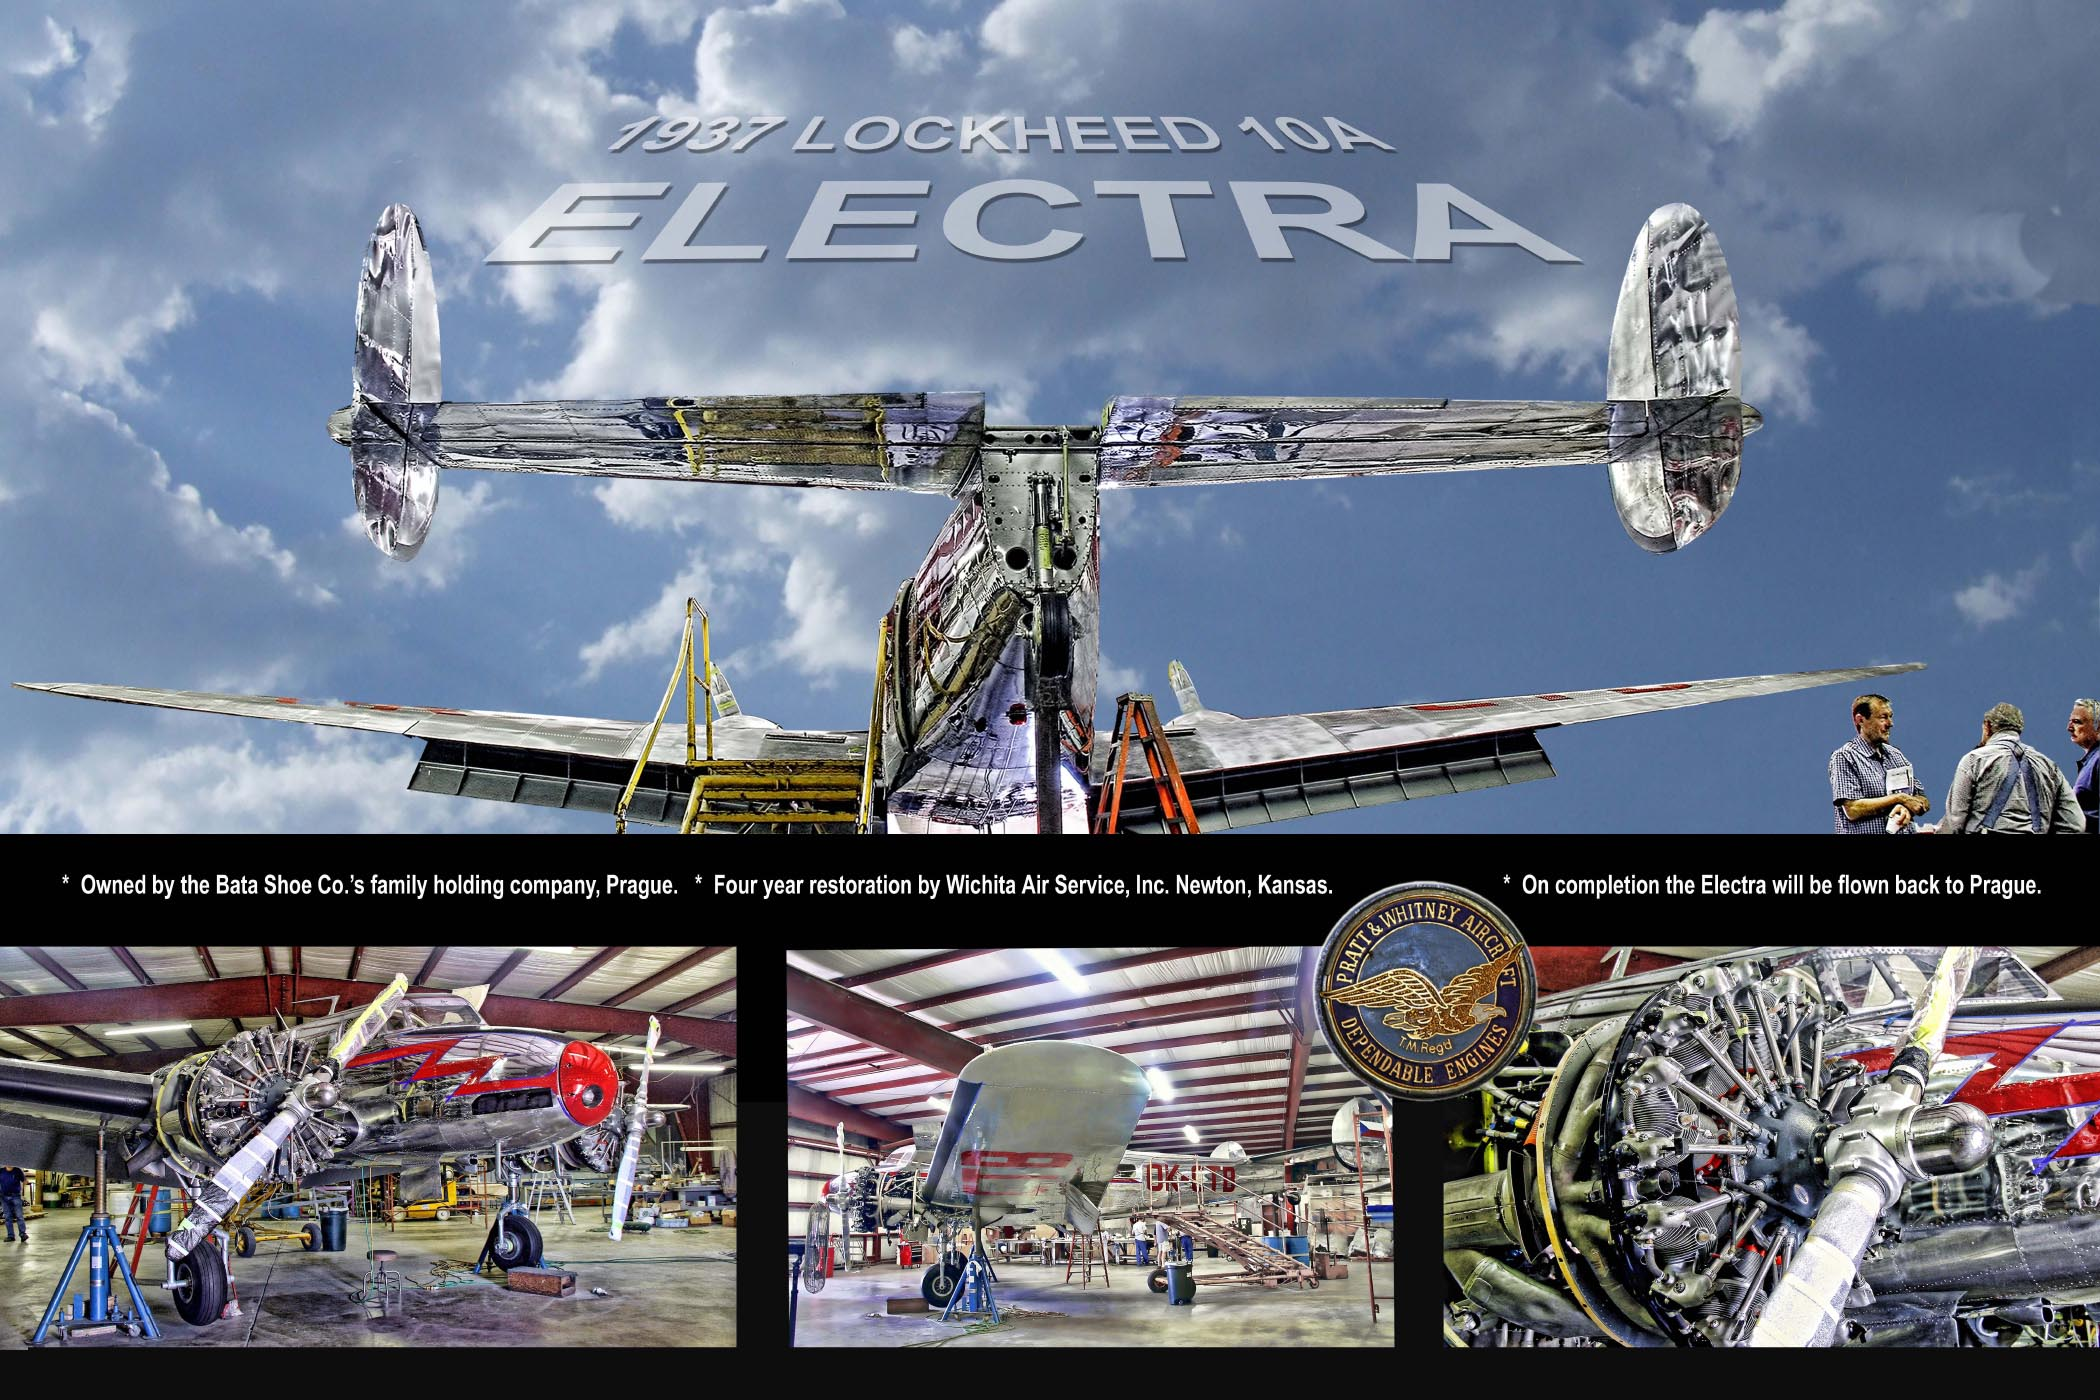 1937-LOCKHEED-ELECTRA-20-INCH-BY-30-INCH-POSTER-PRINTED-ON-MEDIA-BOARD